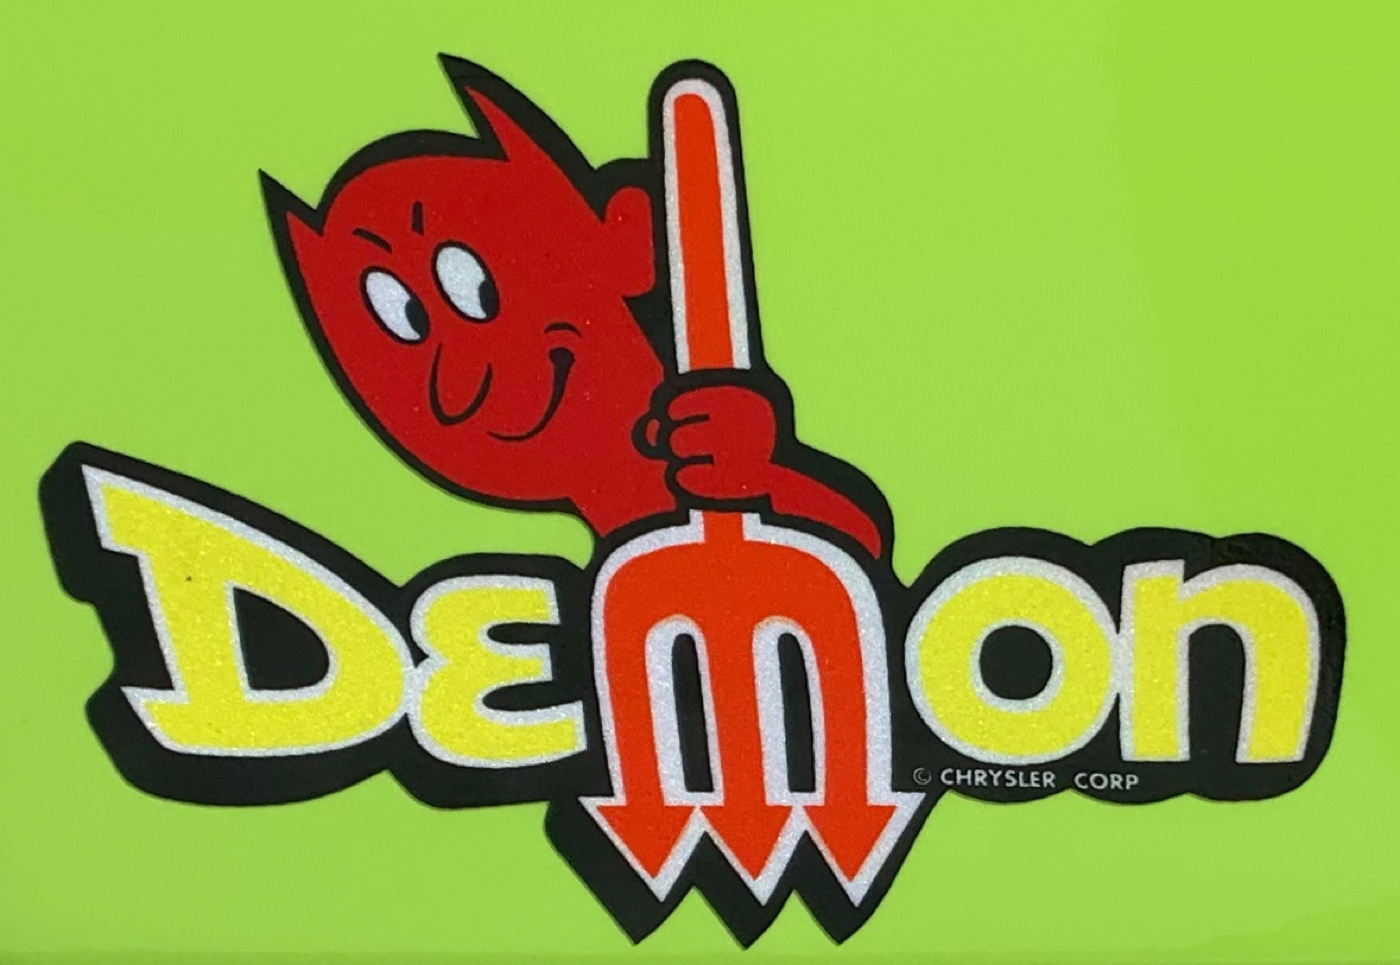 1971 Dodge Demon Emblem